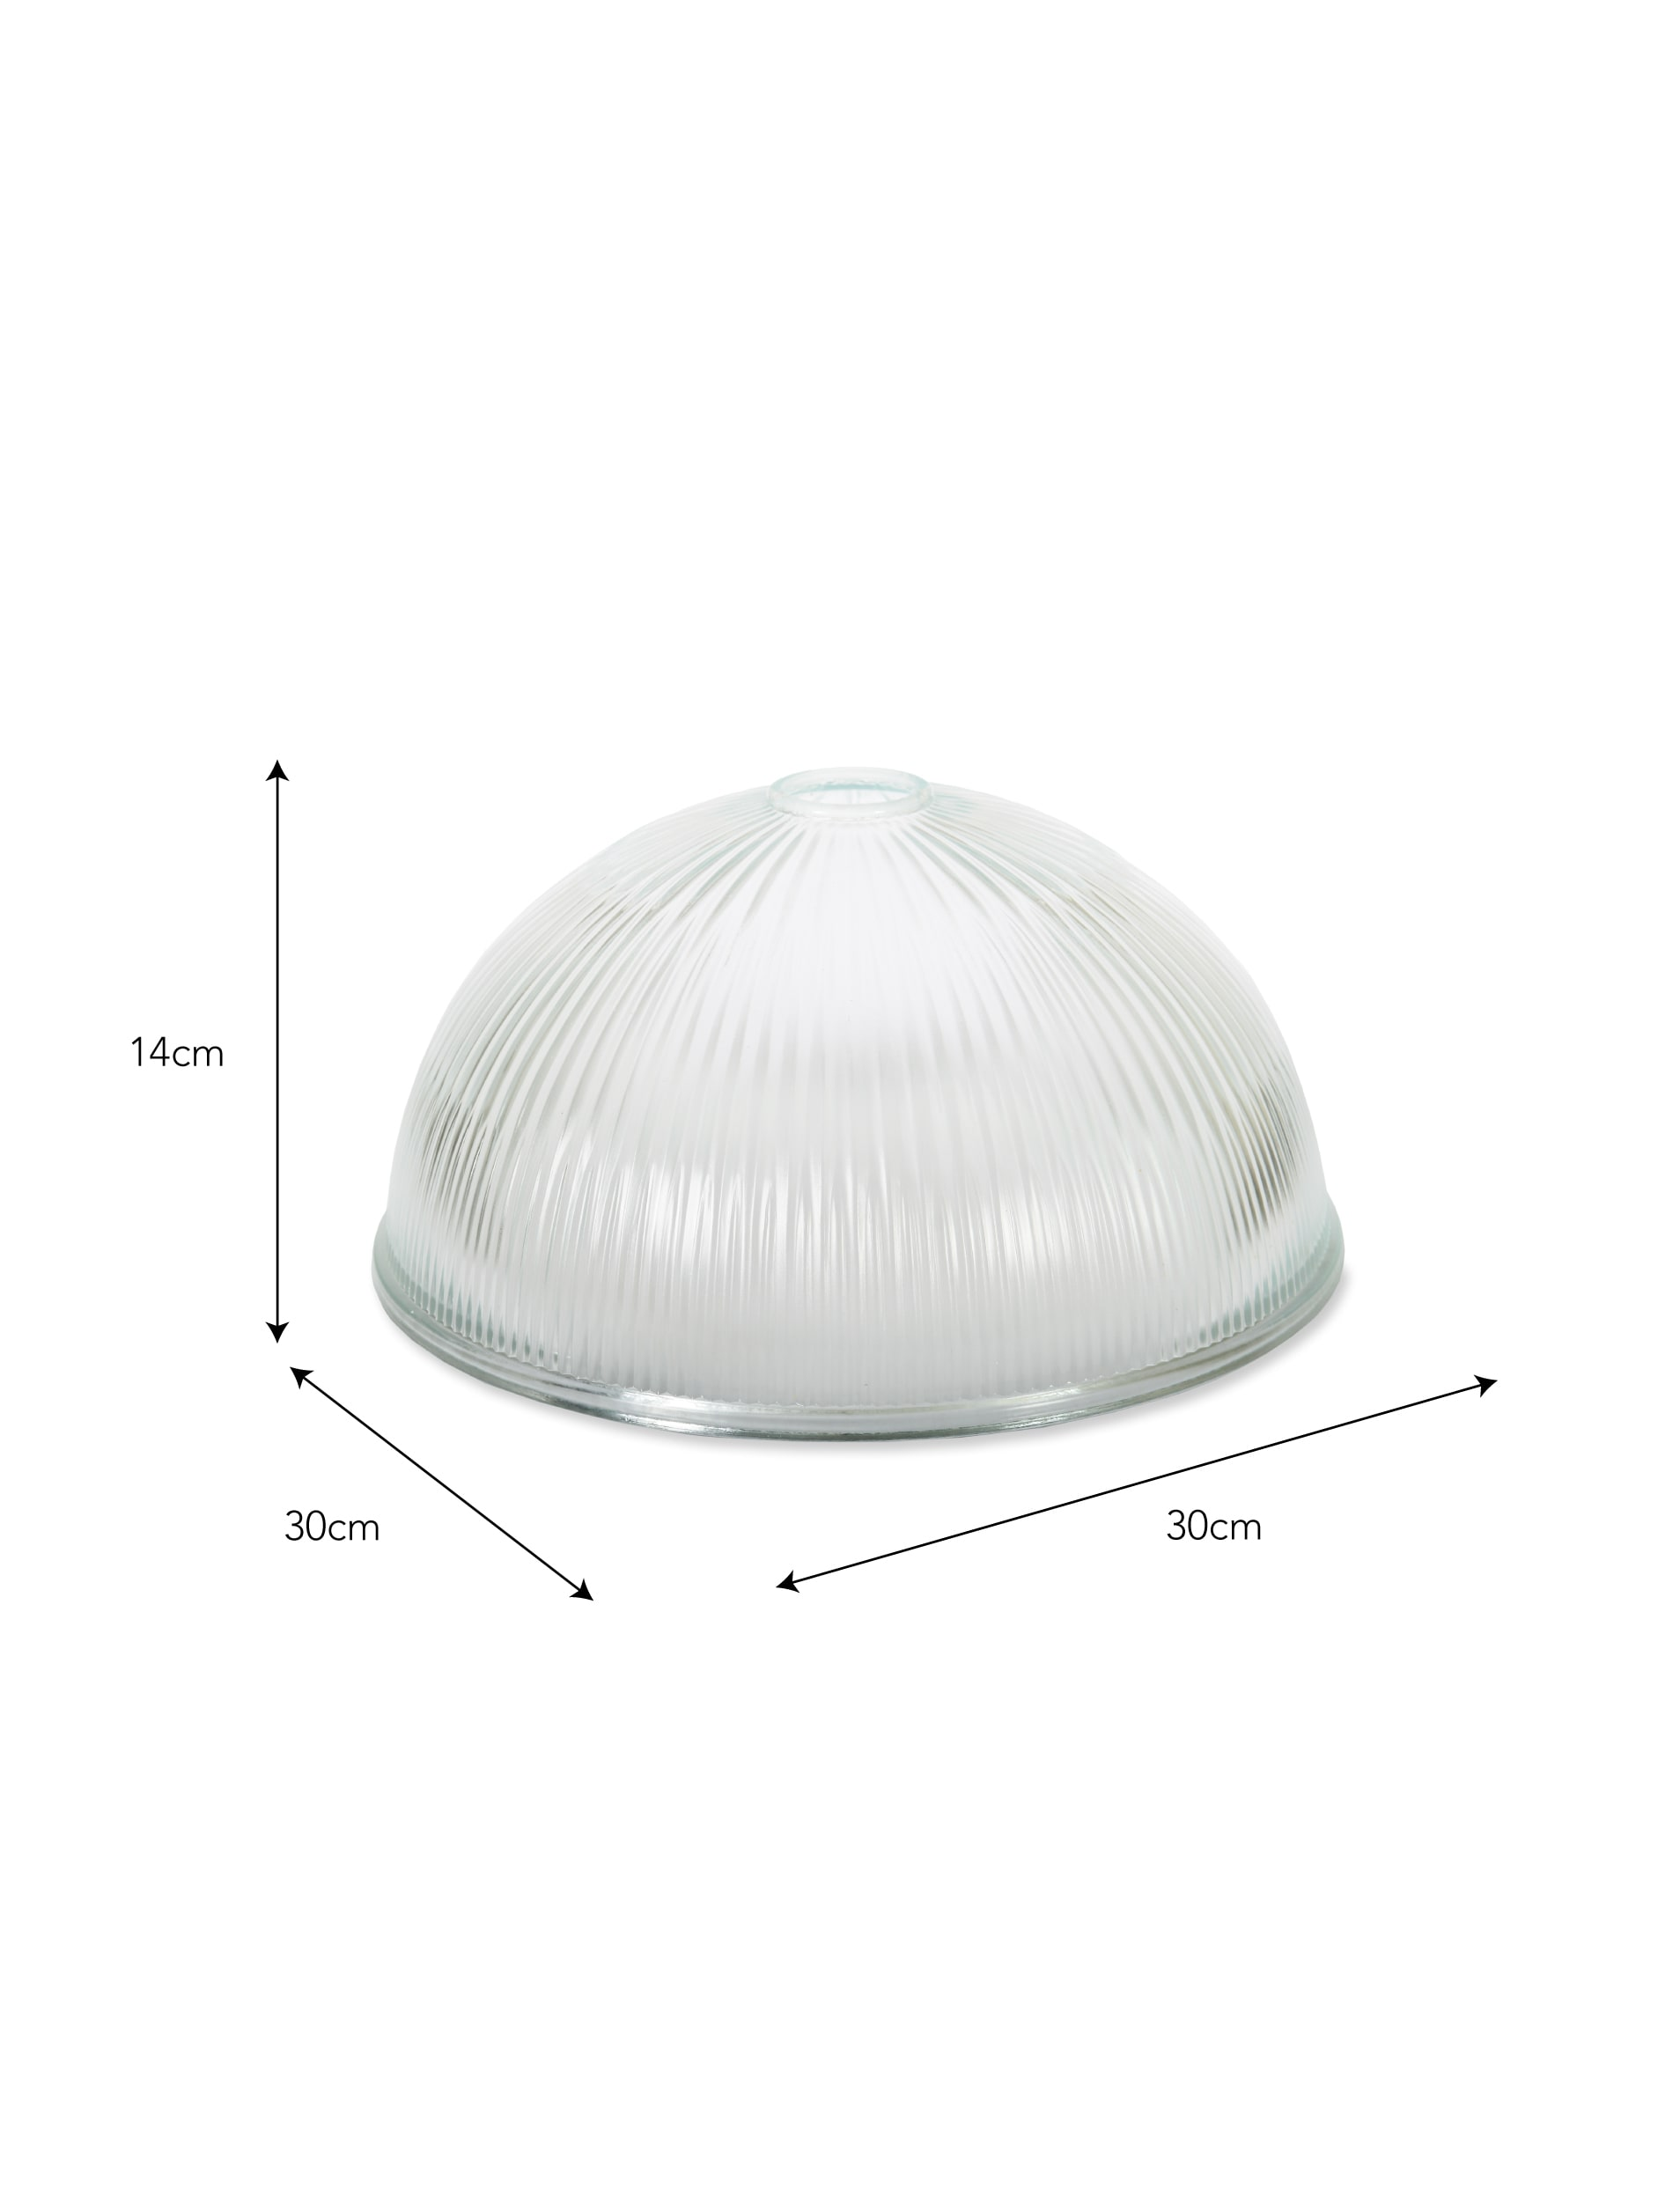 Replacement Shade for Double Paris Light | Garden Trading